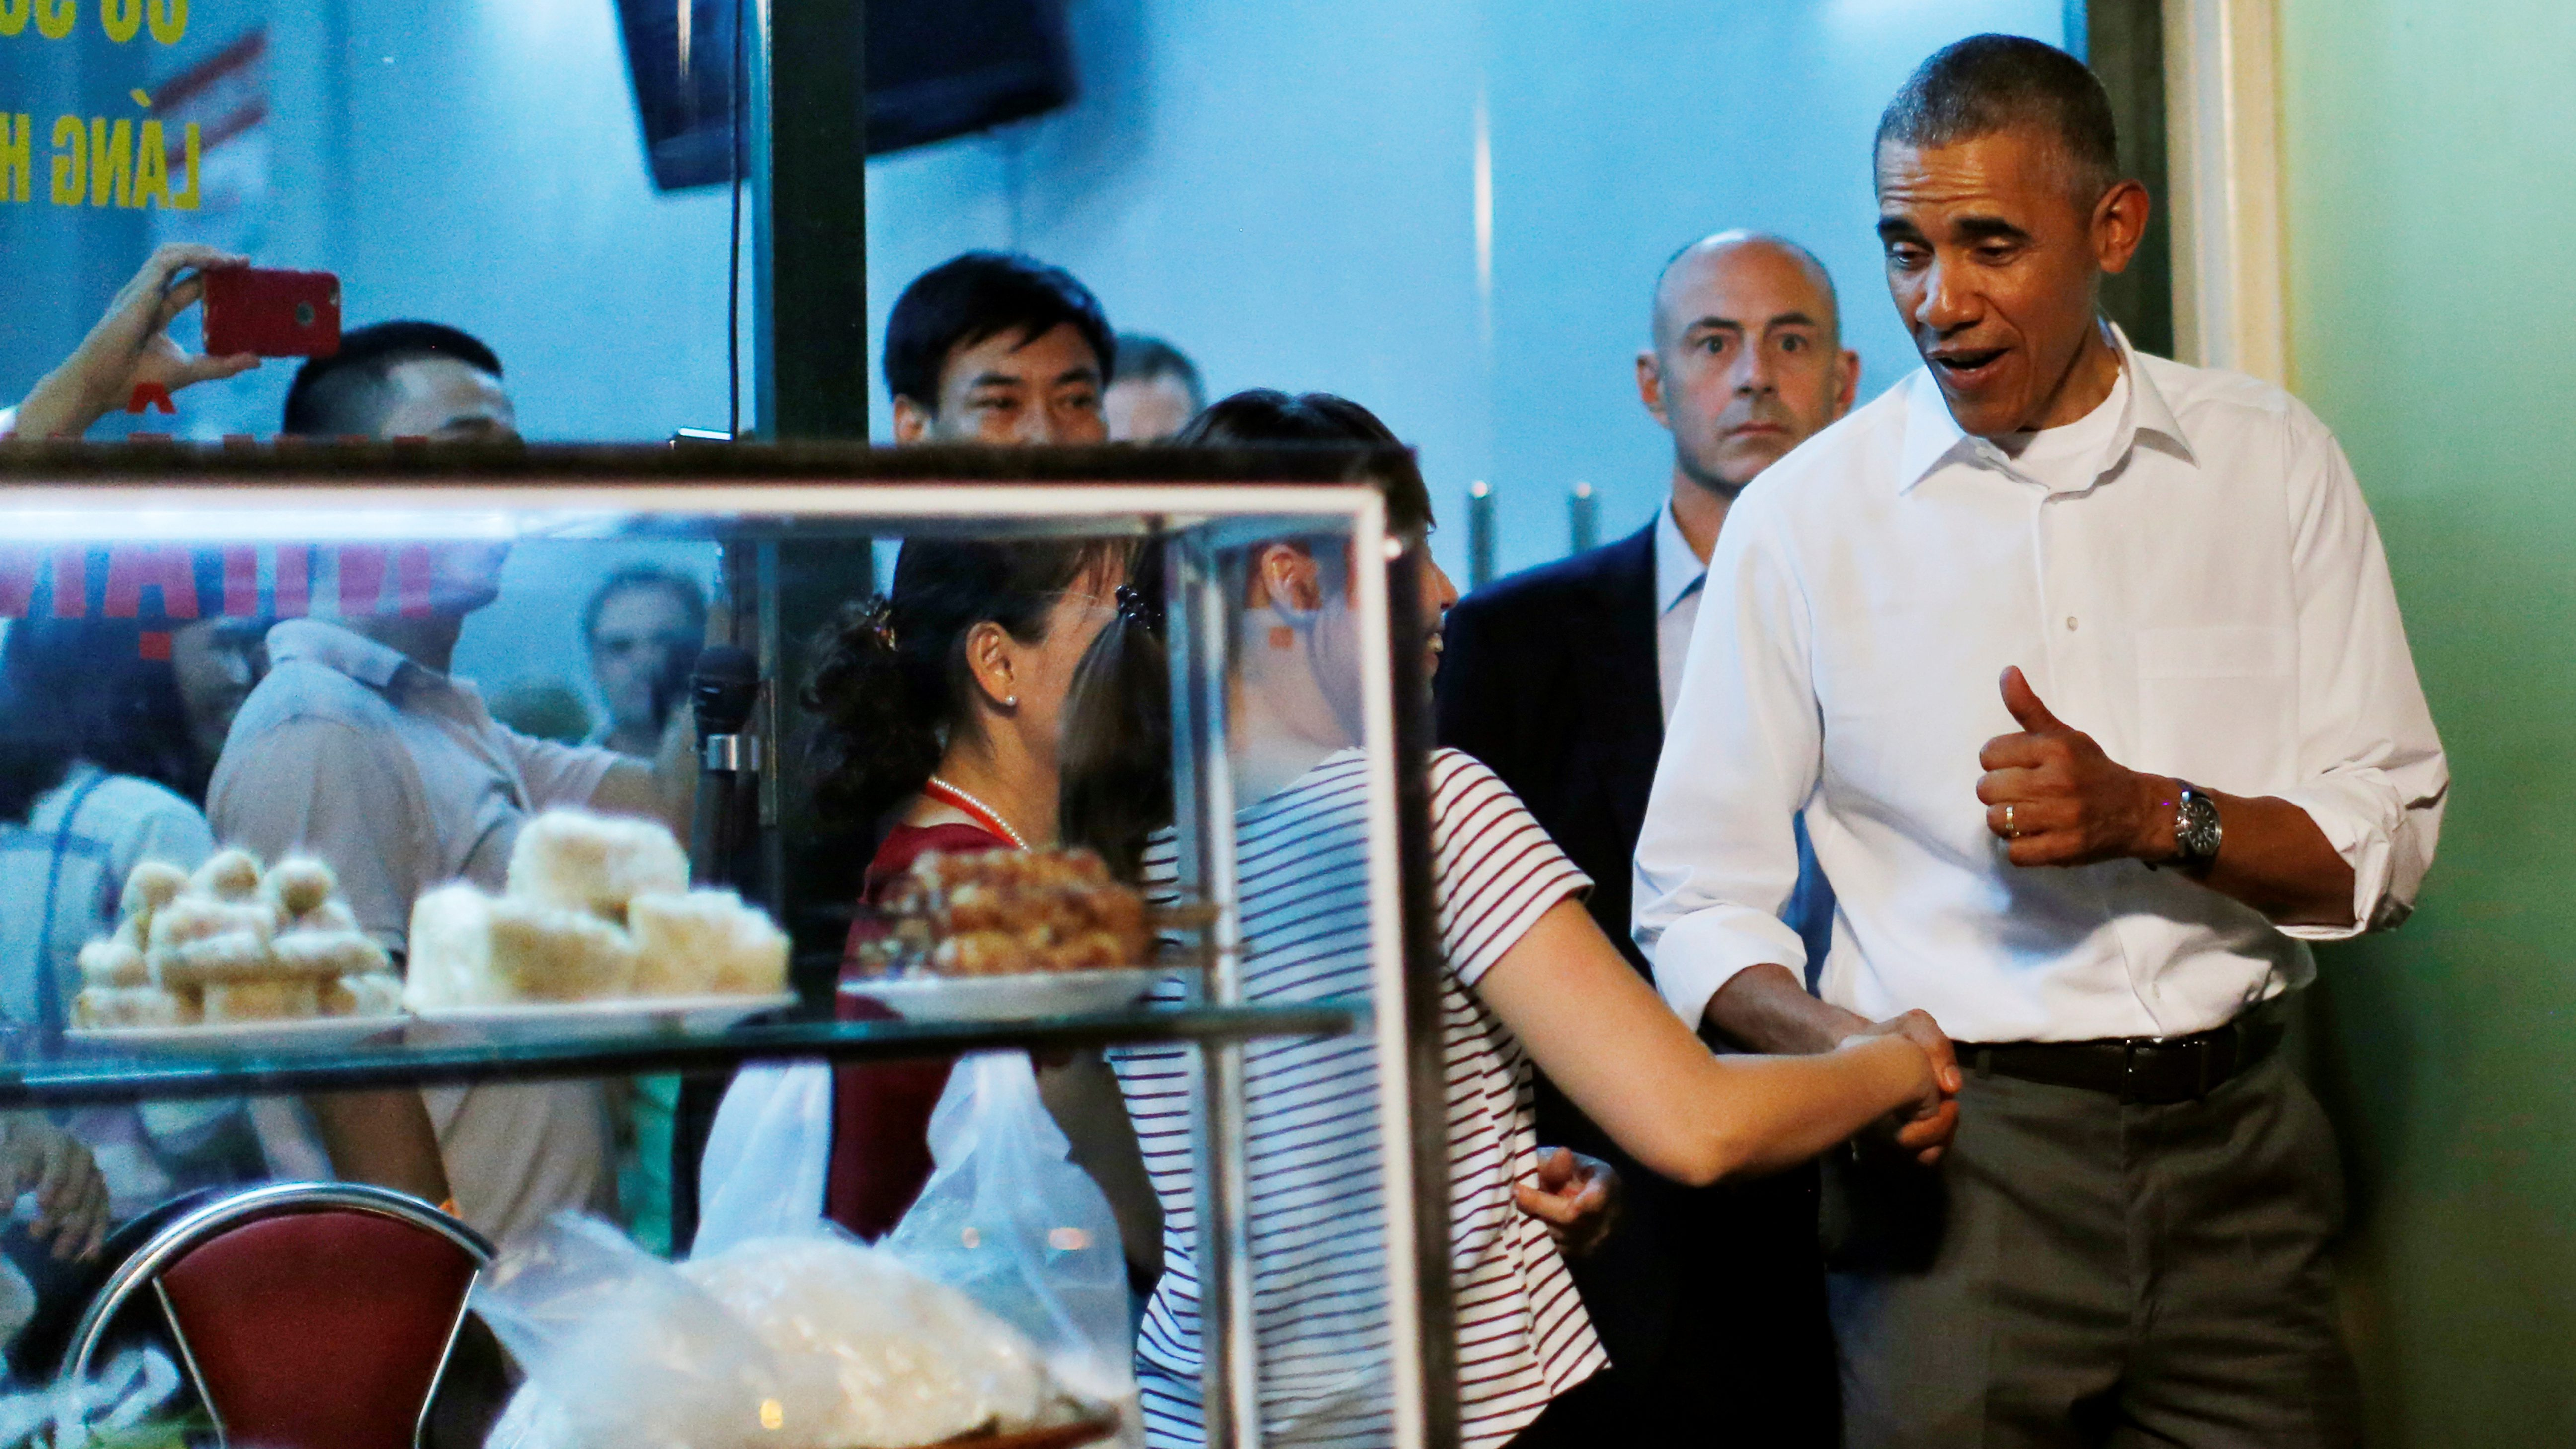 U.S. President Barack Obama shakes hands with a local resident as he leaves after having a dinner with Anthony Bourdain at the restaurant in Hanoi, Vietnam May 23, 2016. REUTERS/Carlos Barria TPX IMAGES OF THE DAY      - RTSFJST